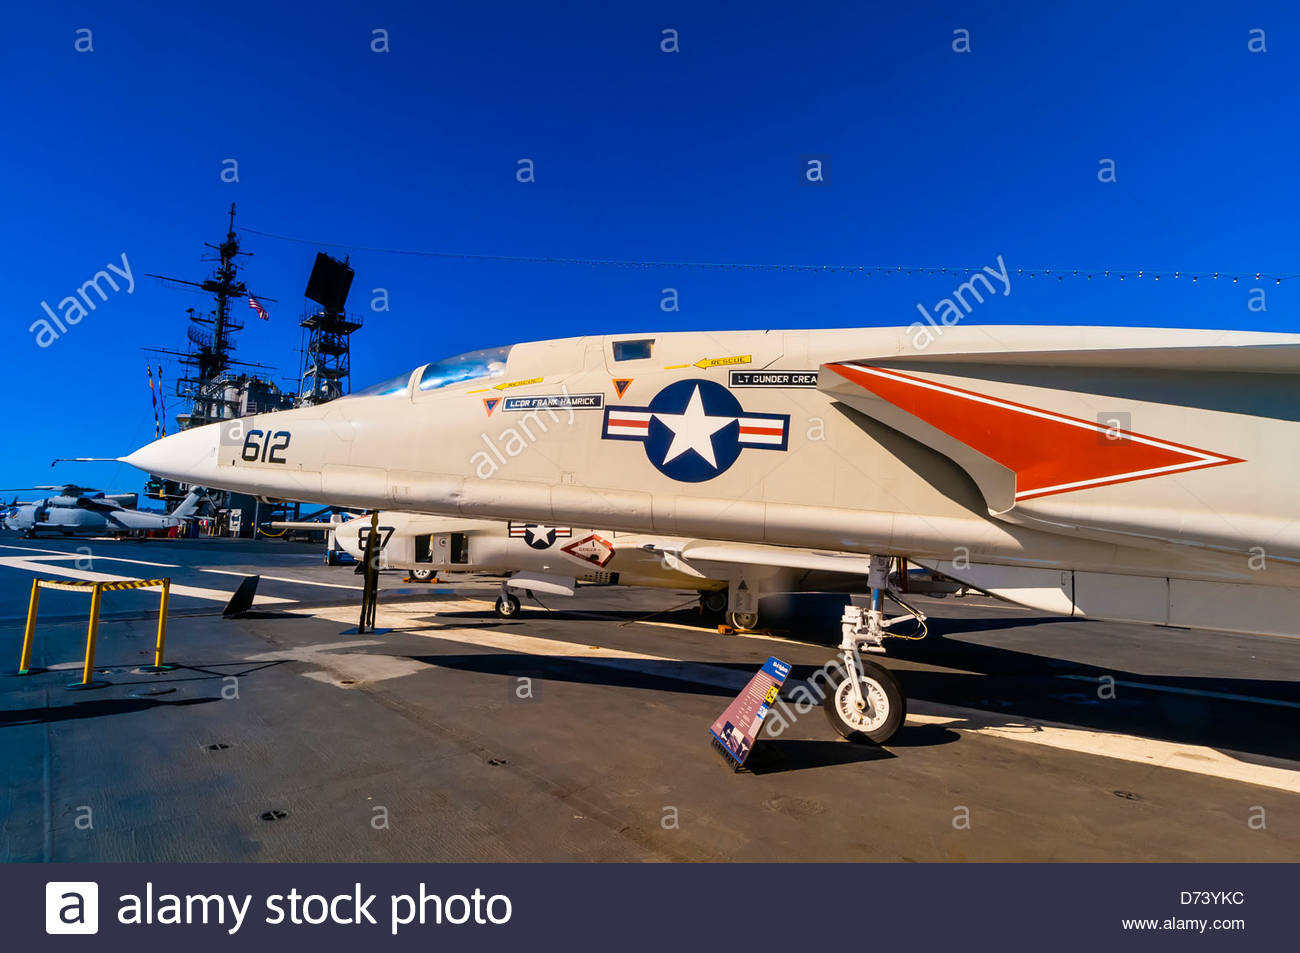 Uss Midway Museum Aircraft Carrier Embarcadero San Diego Stock Photo Royalty Free Image